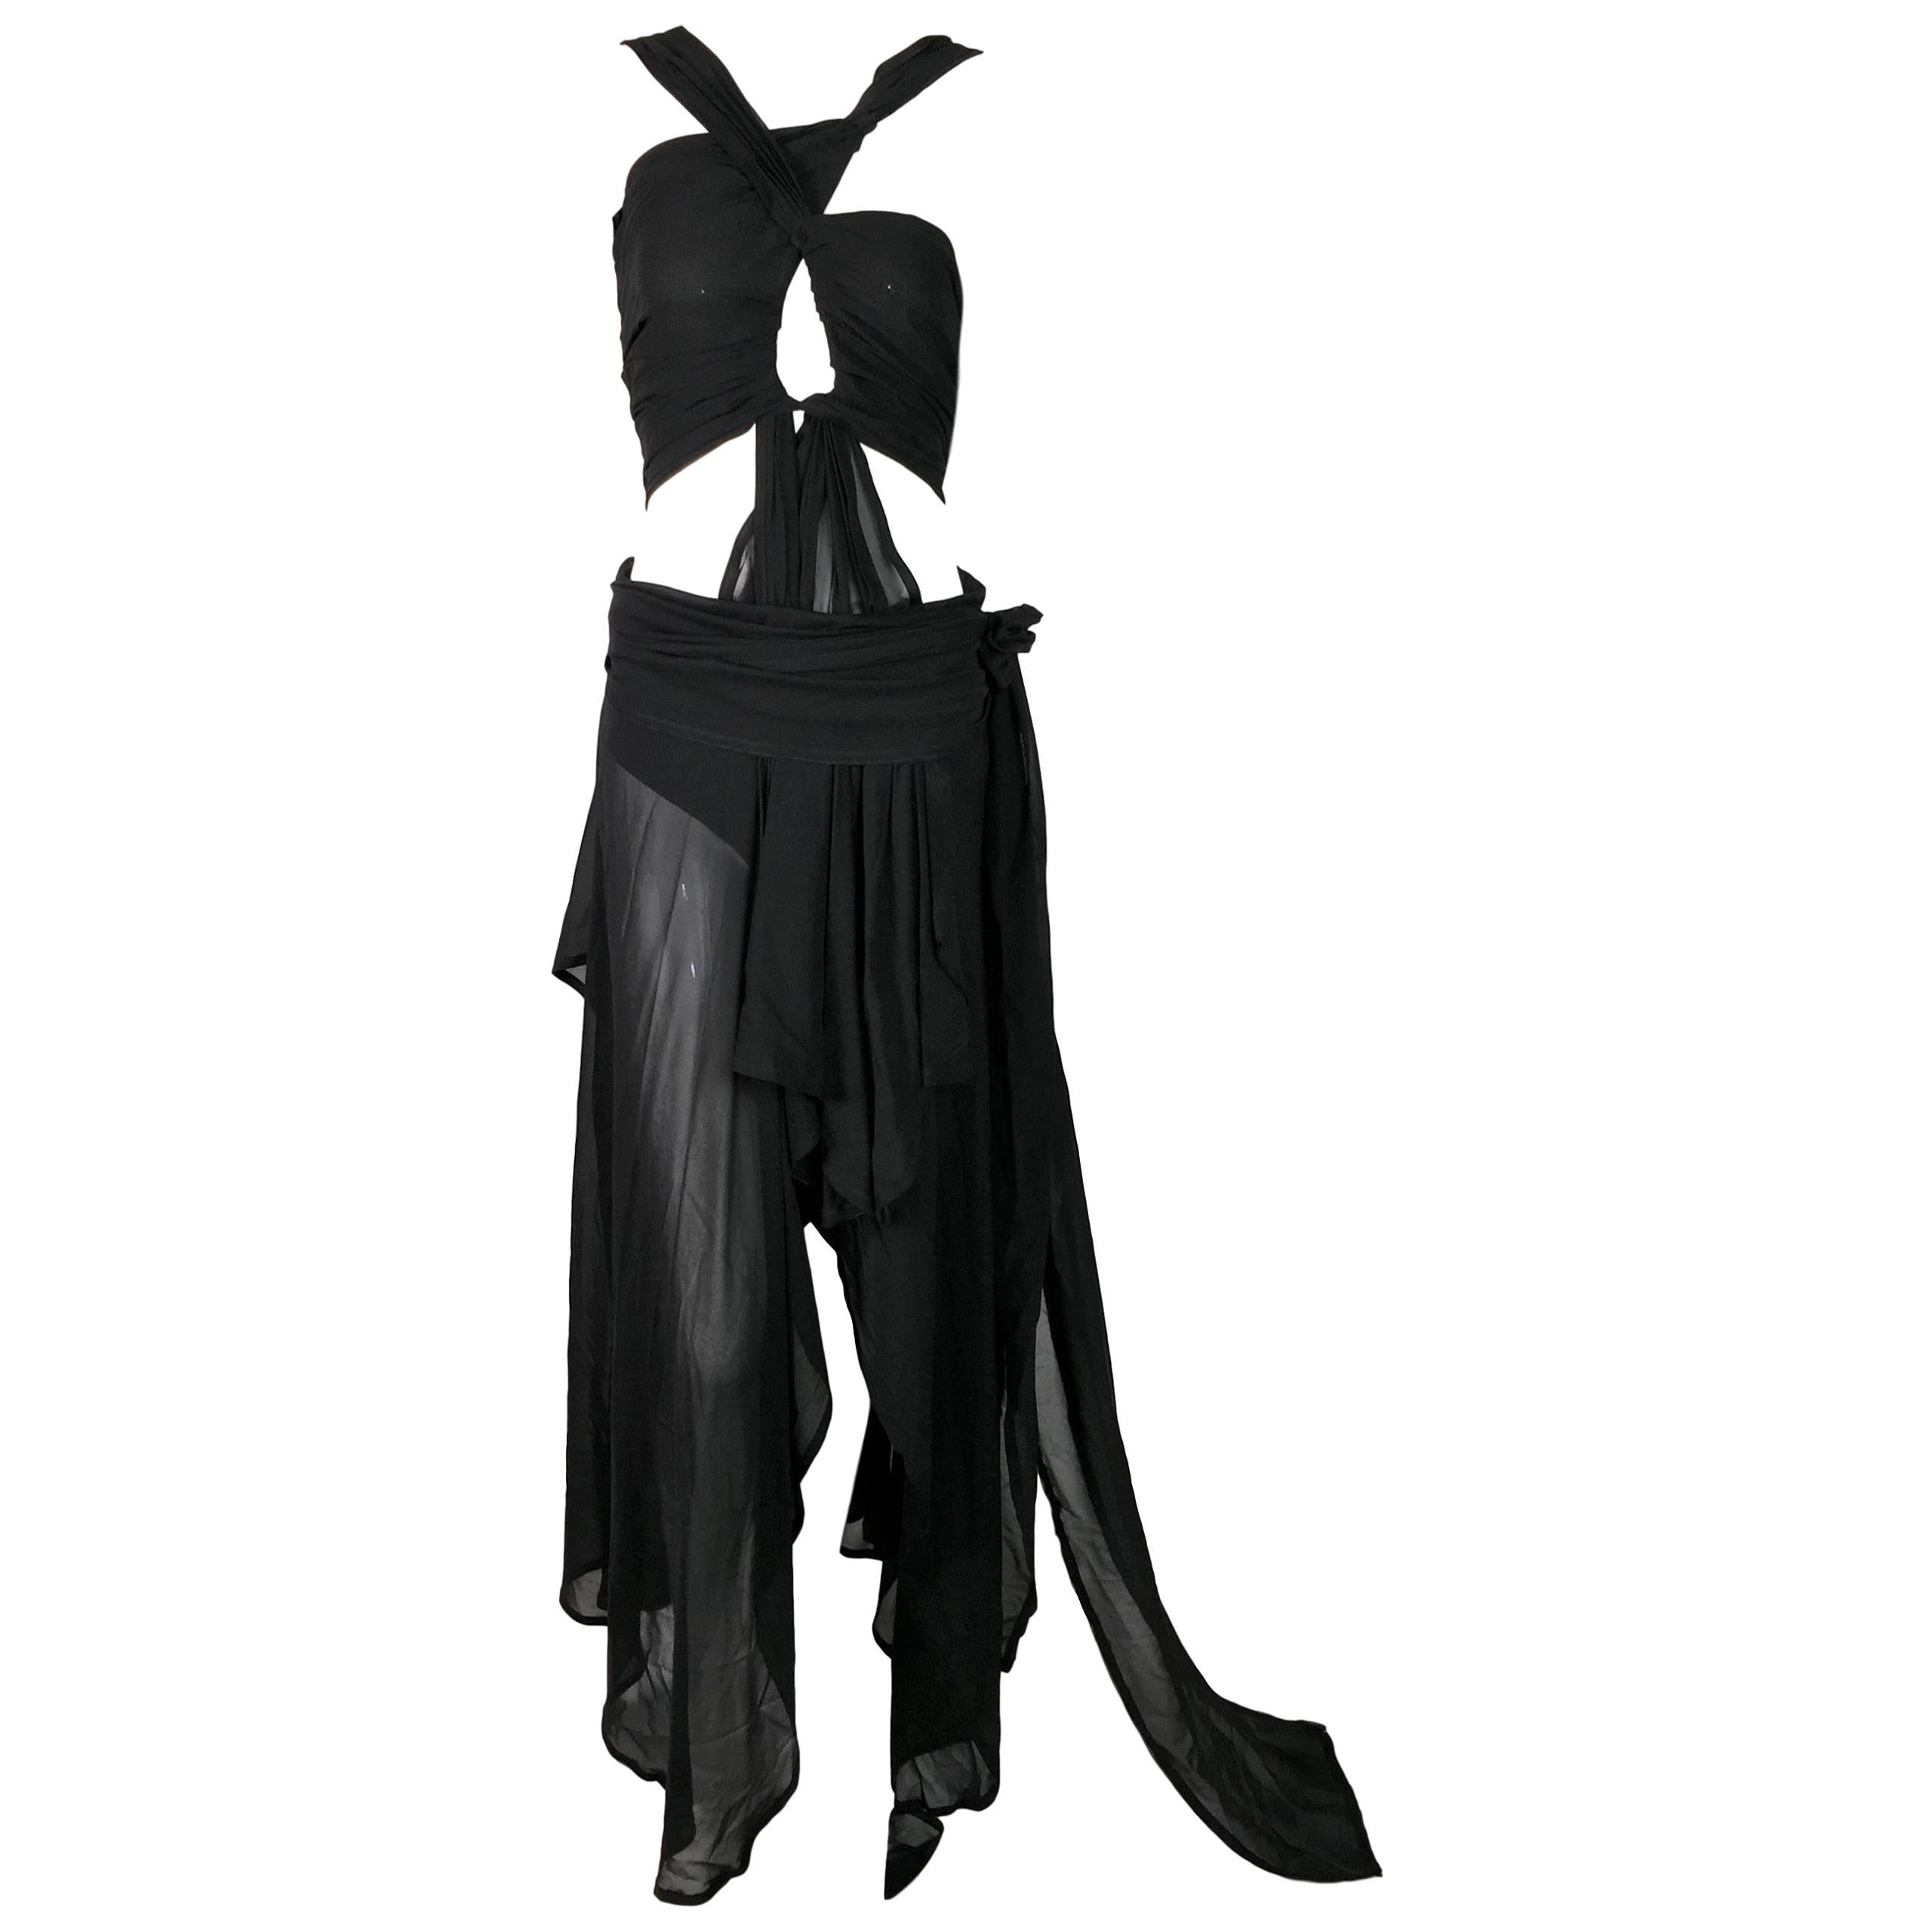 S/S 2002 Yves Saint Laurent Tom Ford Runway Sheer Black Silk Cut-Out Gown Dress